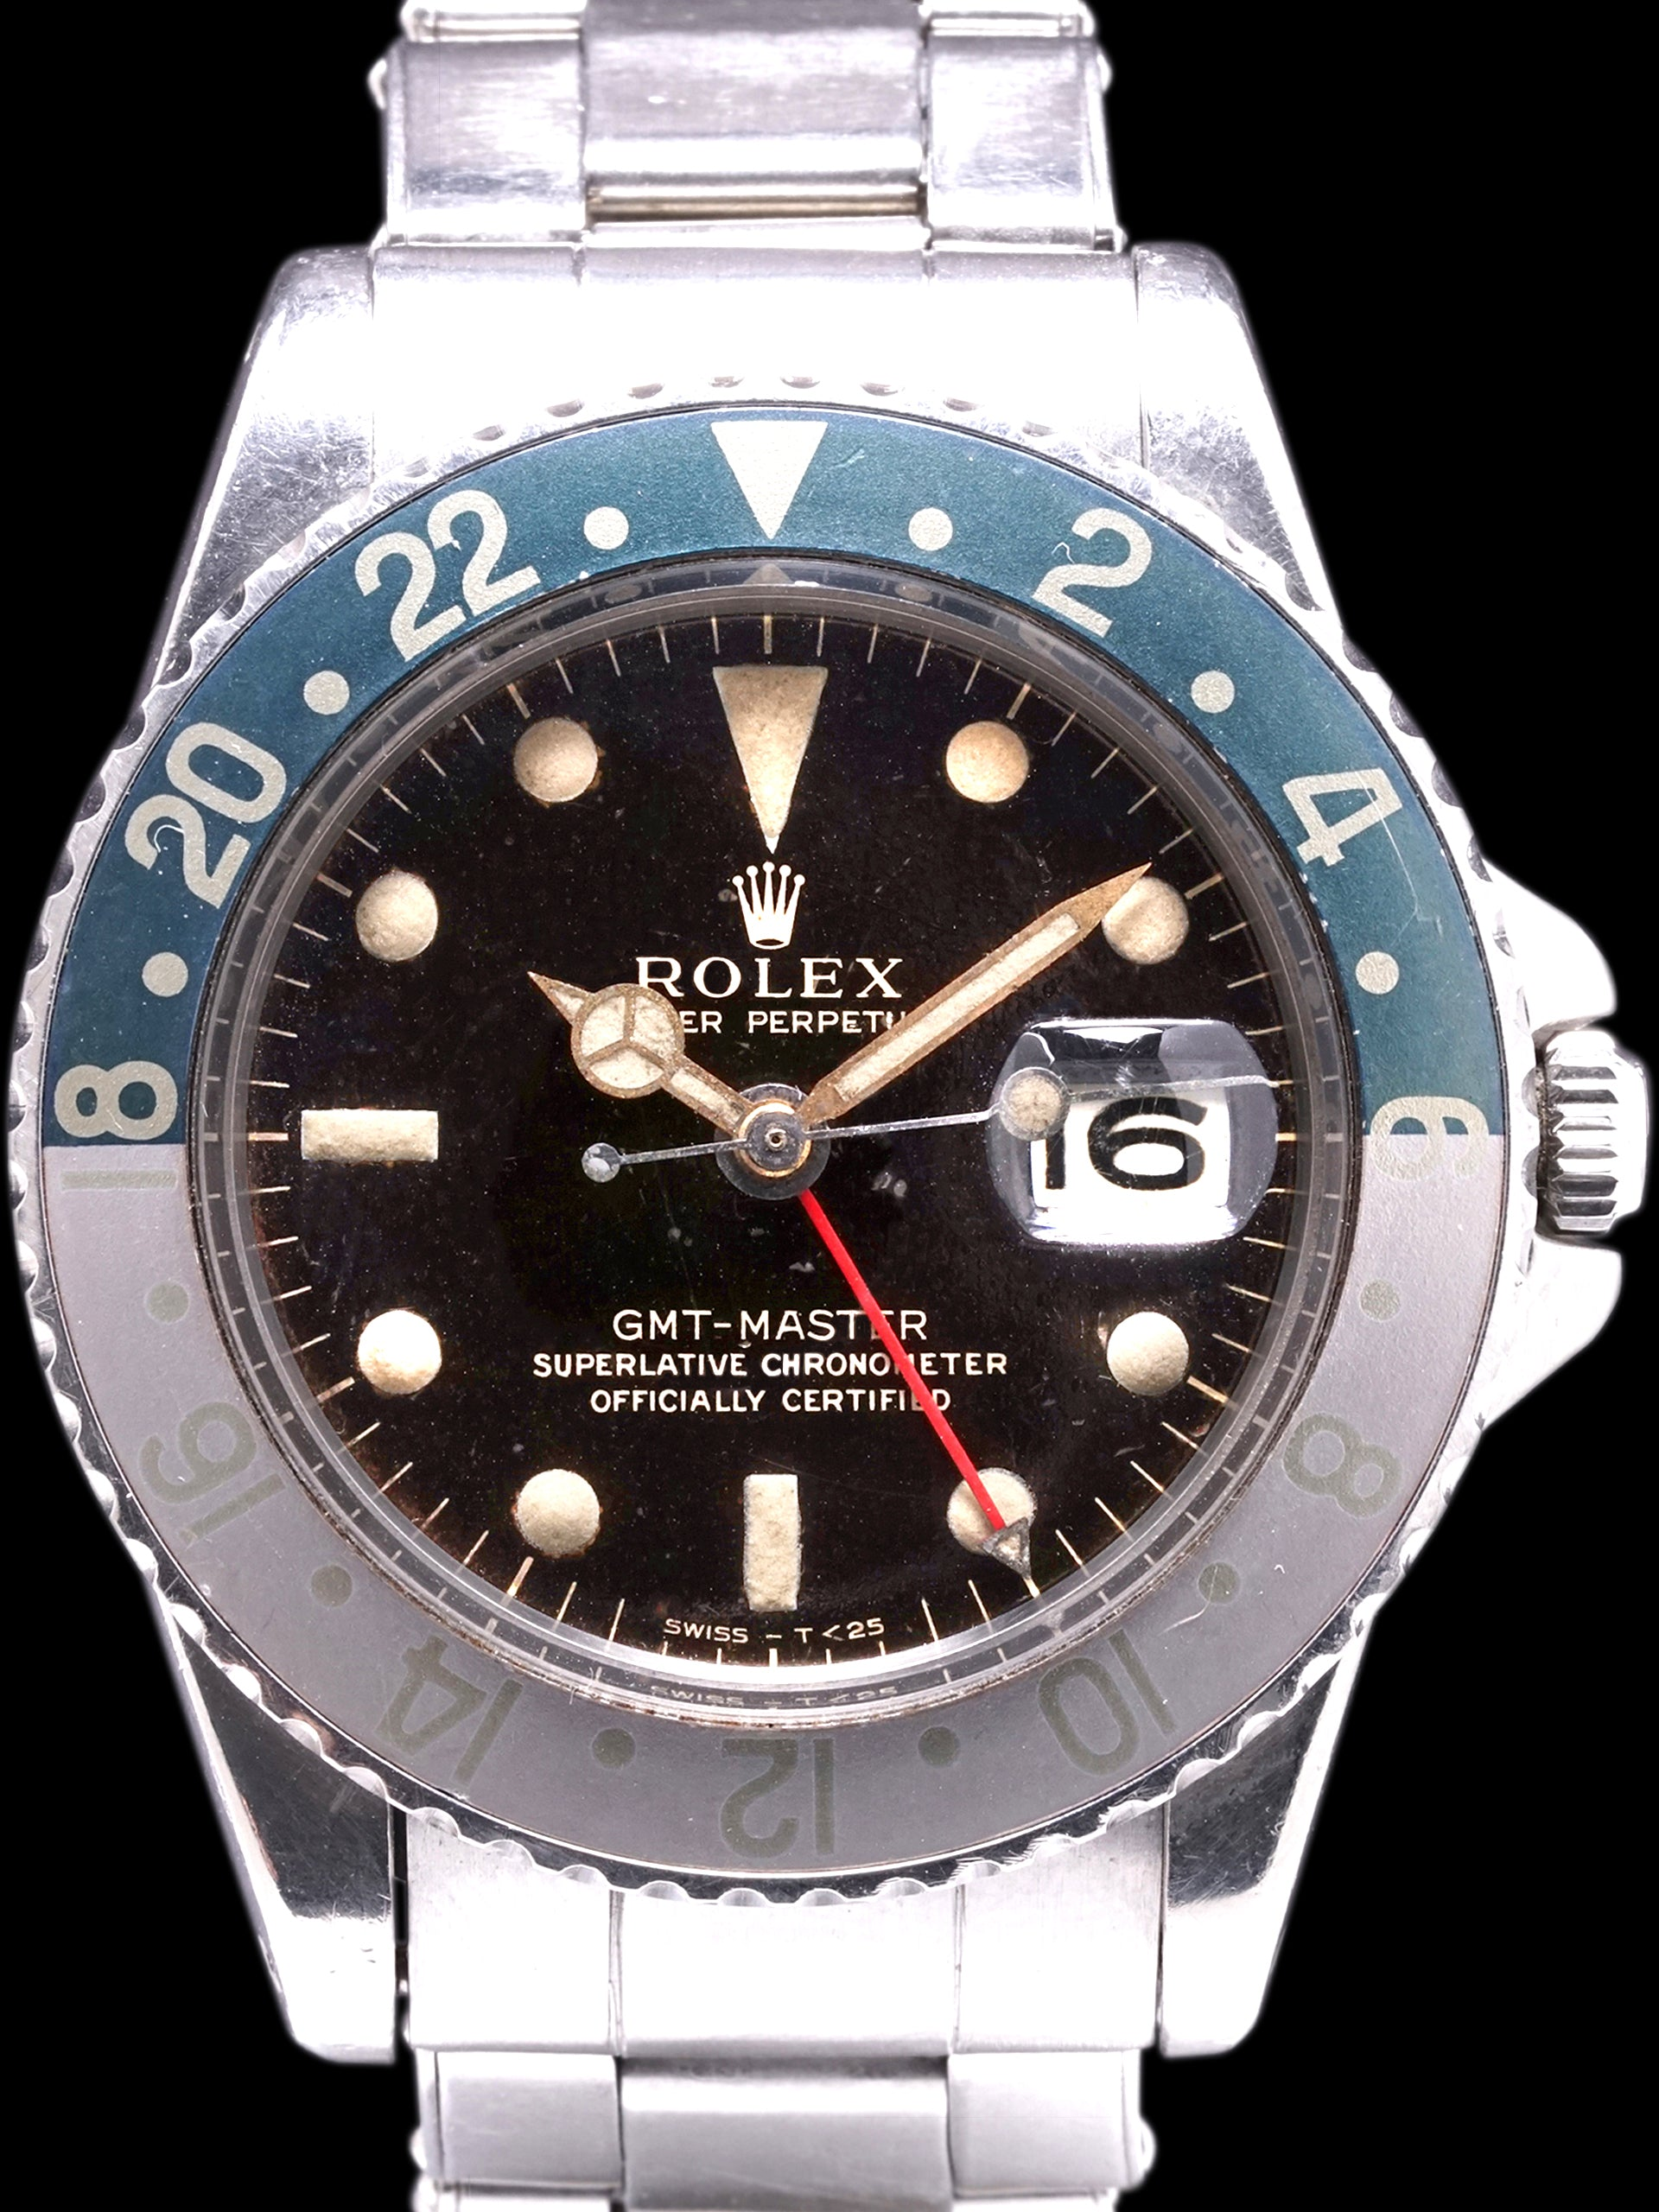 Tropical 1963 Rolex GMT-Master (Ref. 1675) Gilt PCG W/ RSC Papers, Box, & Military Provenance